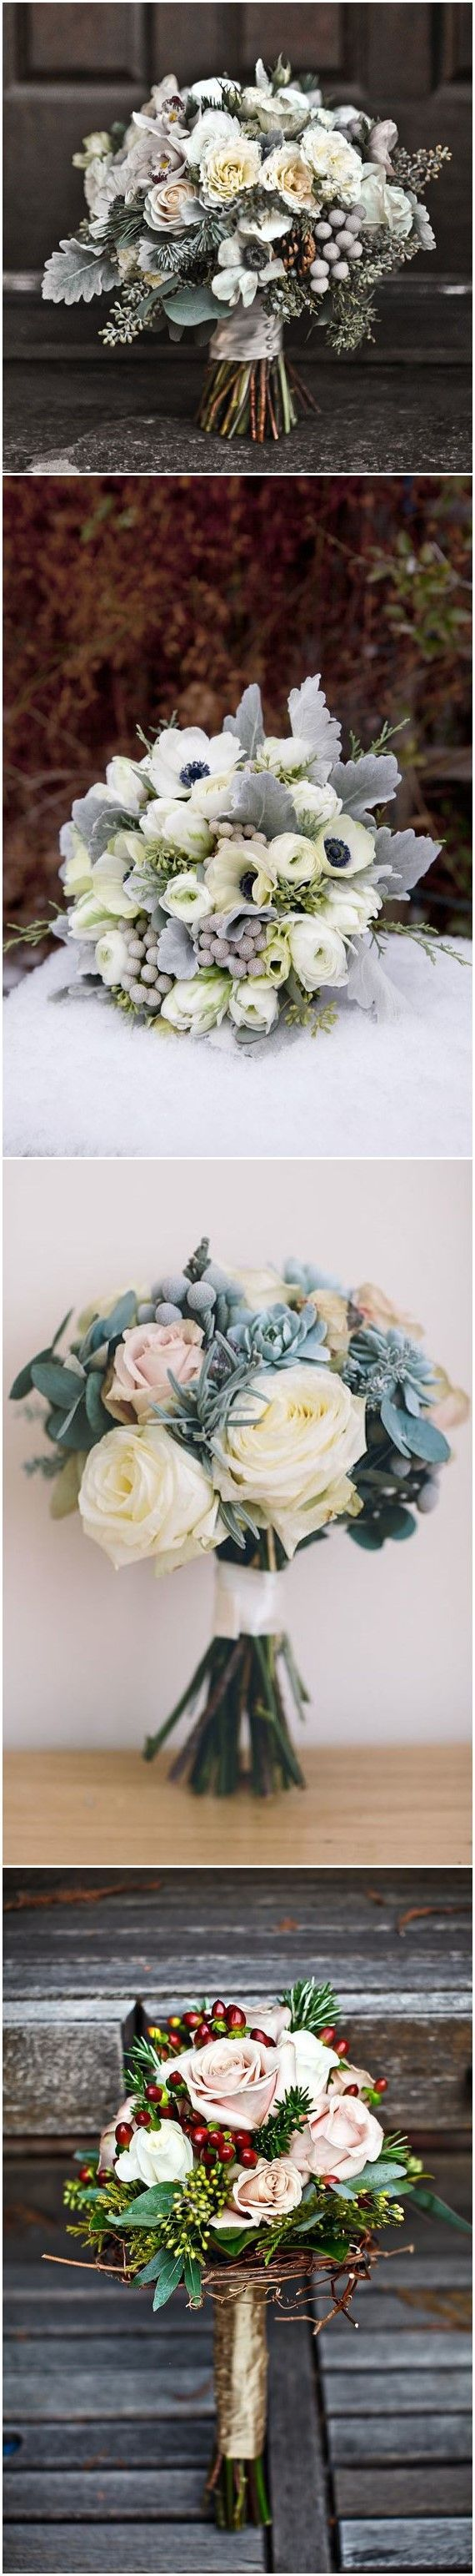 Wedding decorations accessories december 2018 Wedding Ideas  Bouquet   Smoking Hot Winter Wedding Bouquets You